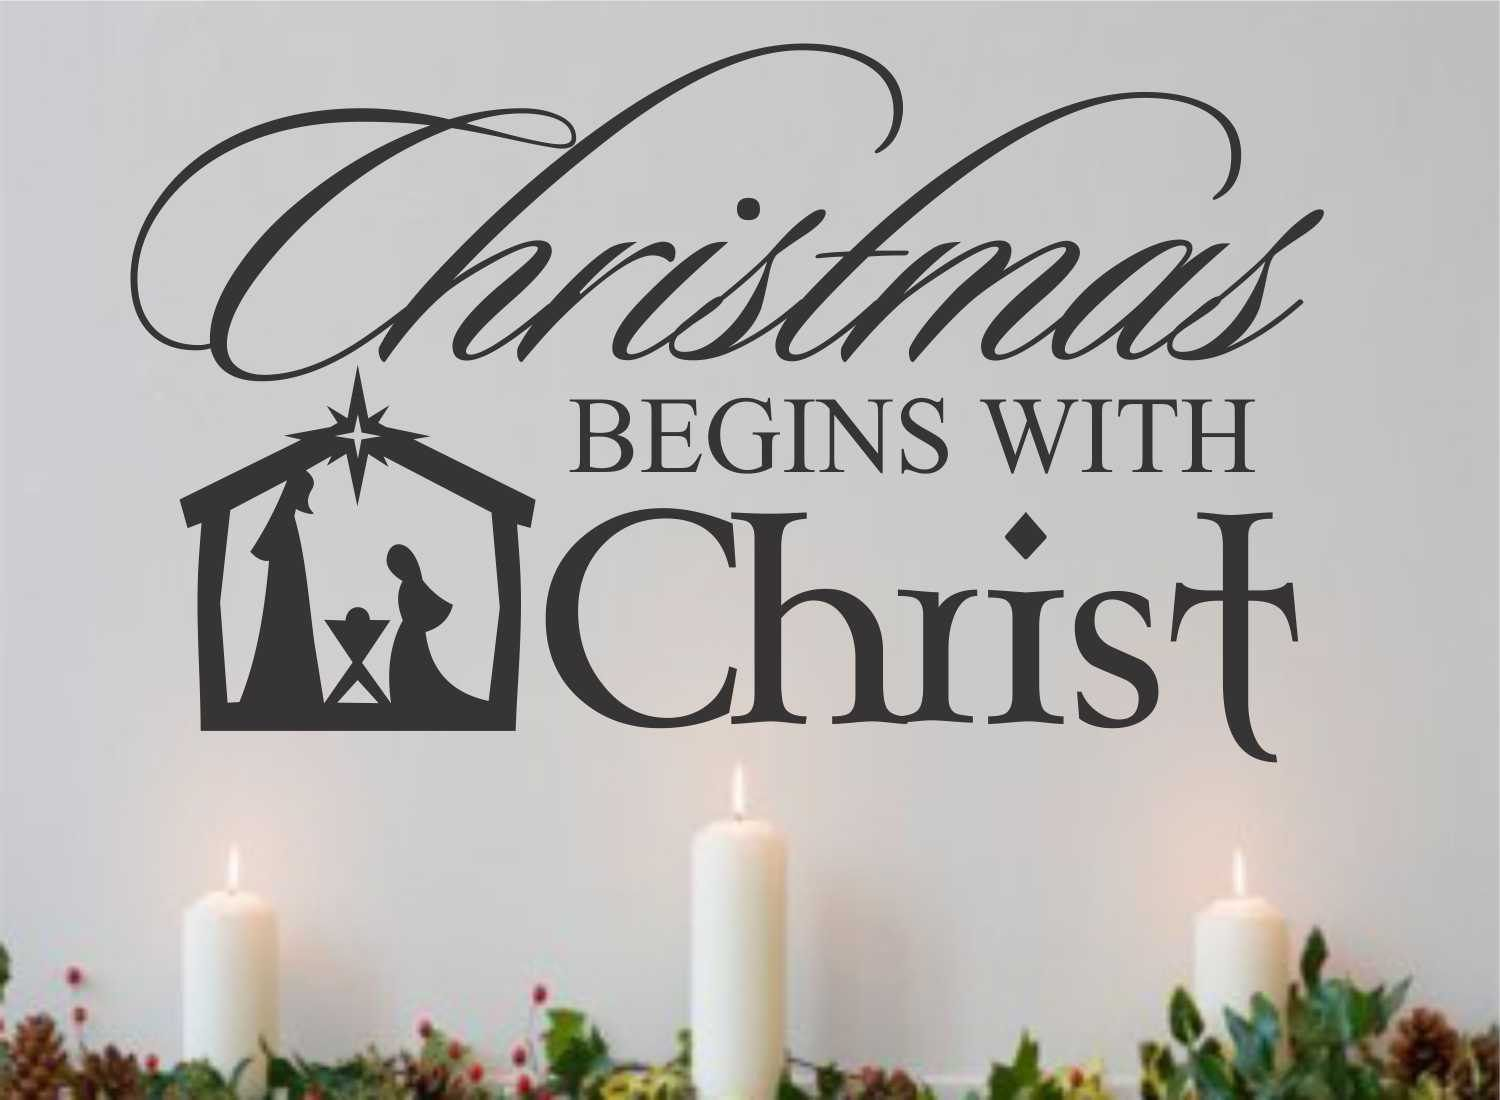 Religious Christmas Quotes Religious Vinyl Wall Lettering Christmas Begins With Christ